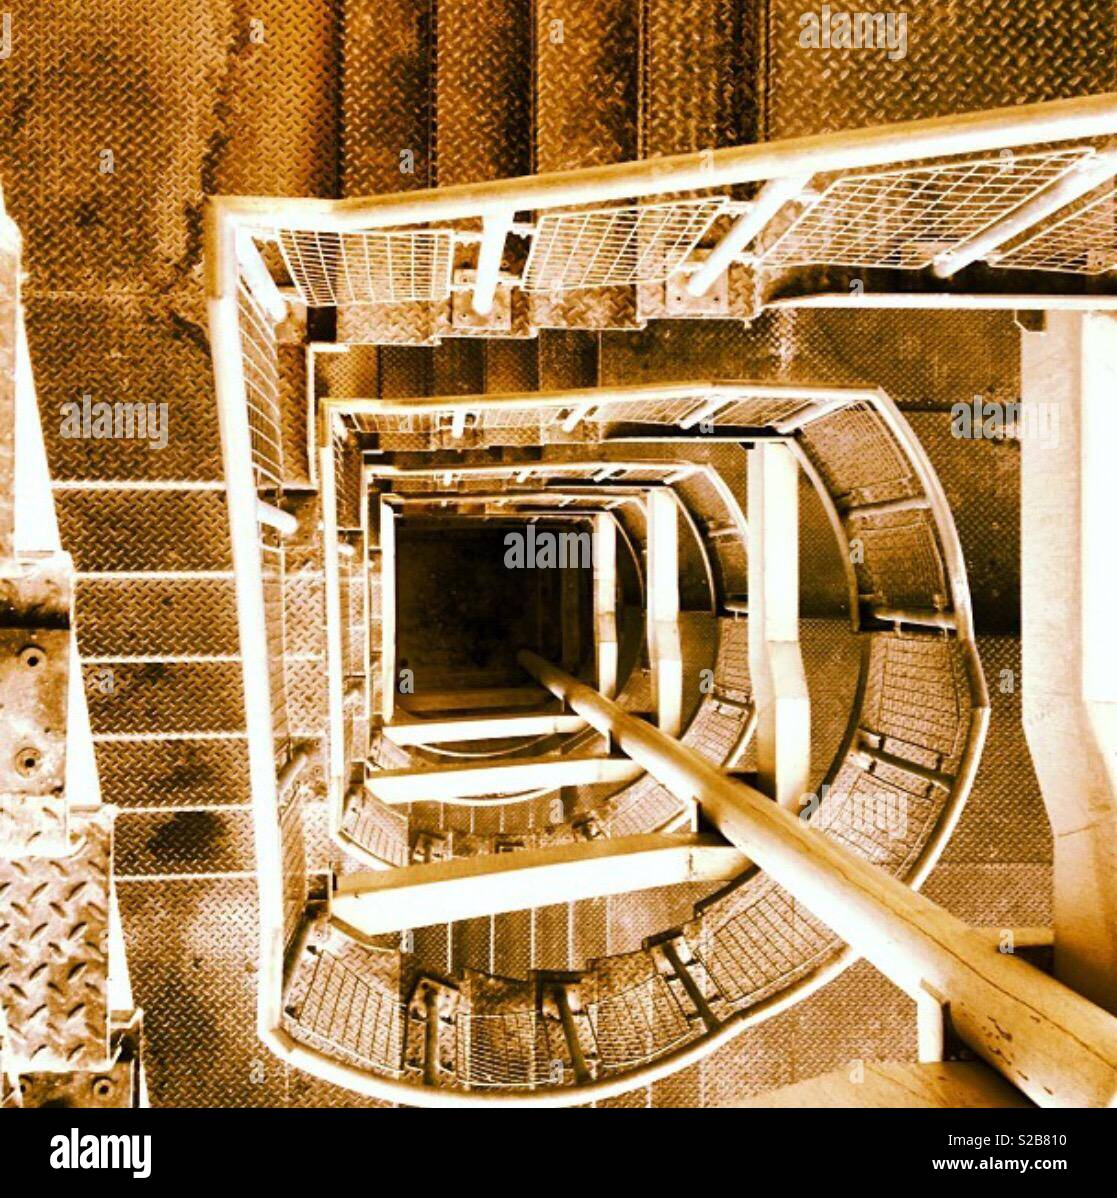 Delightful Industrial Spiral Staircase From Above   Stock Image